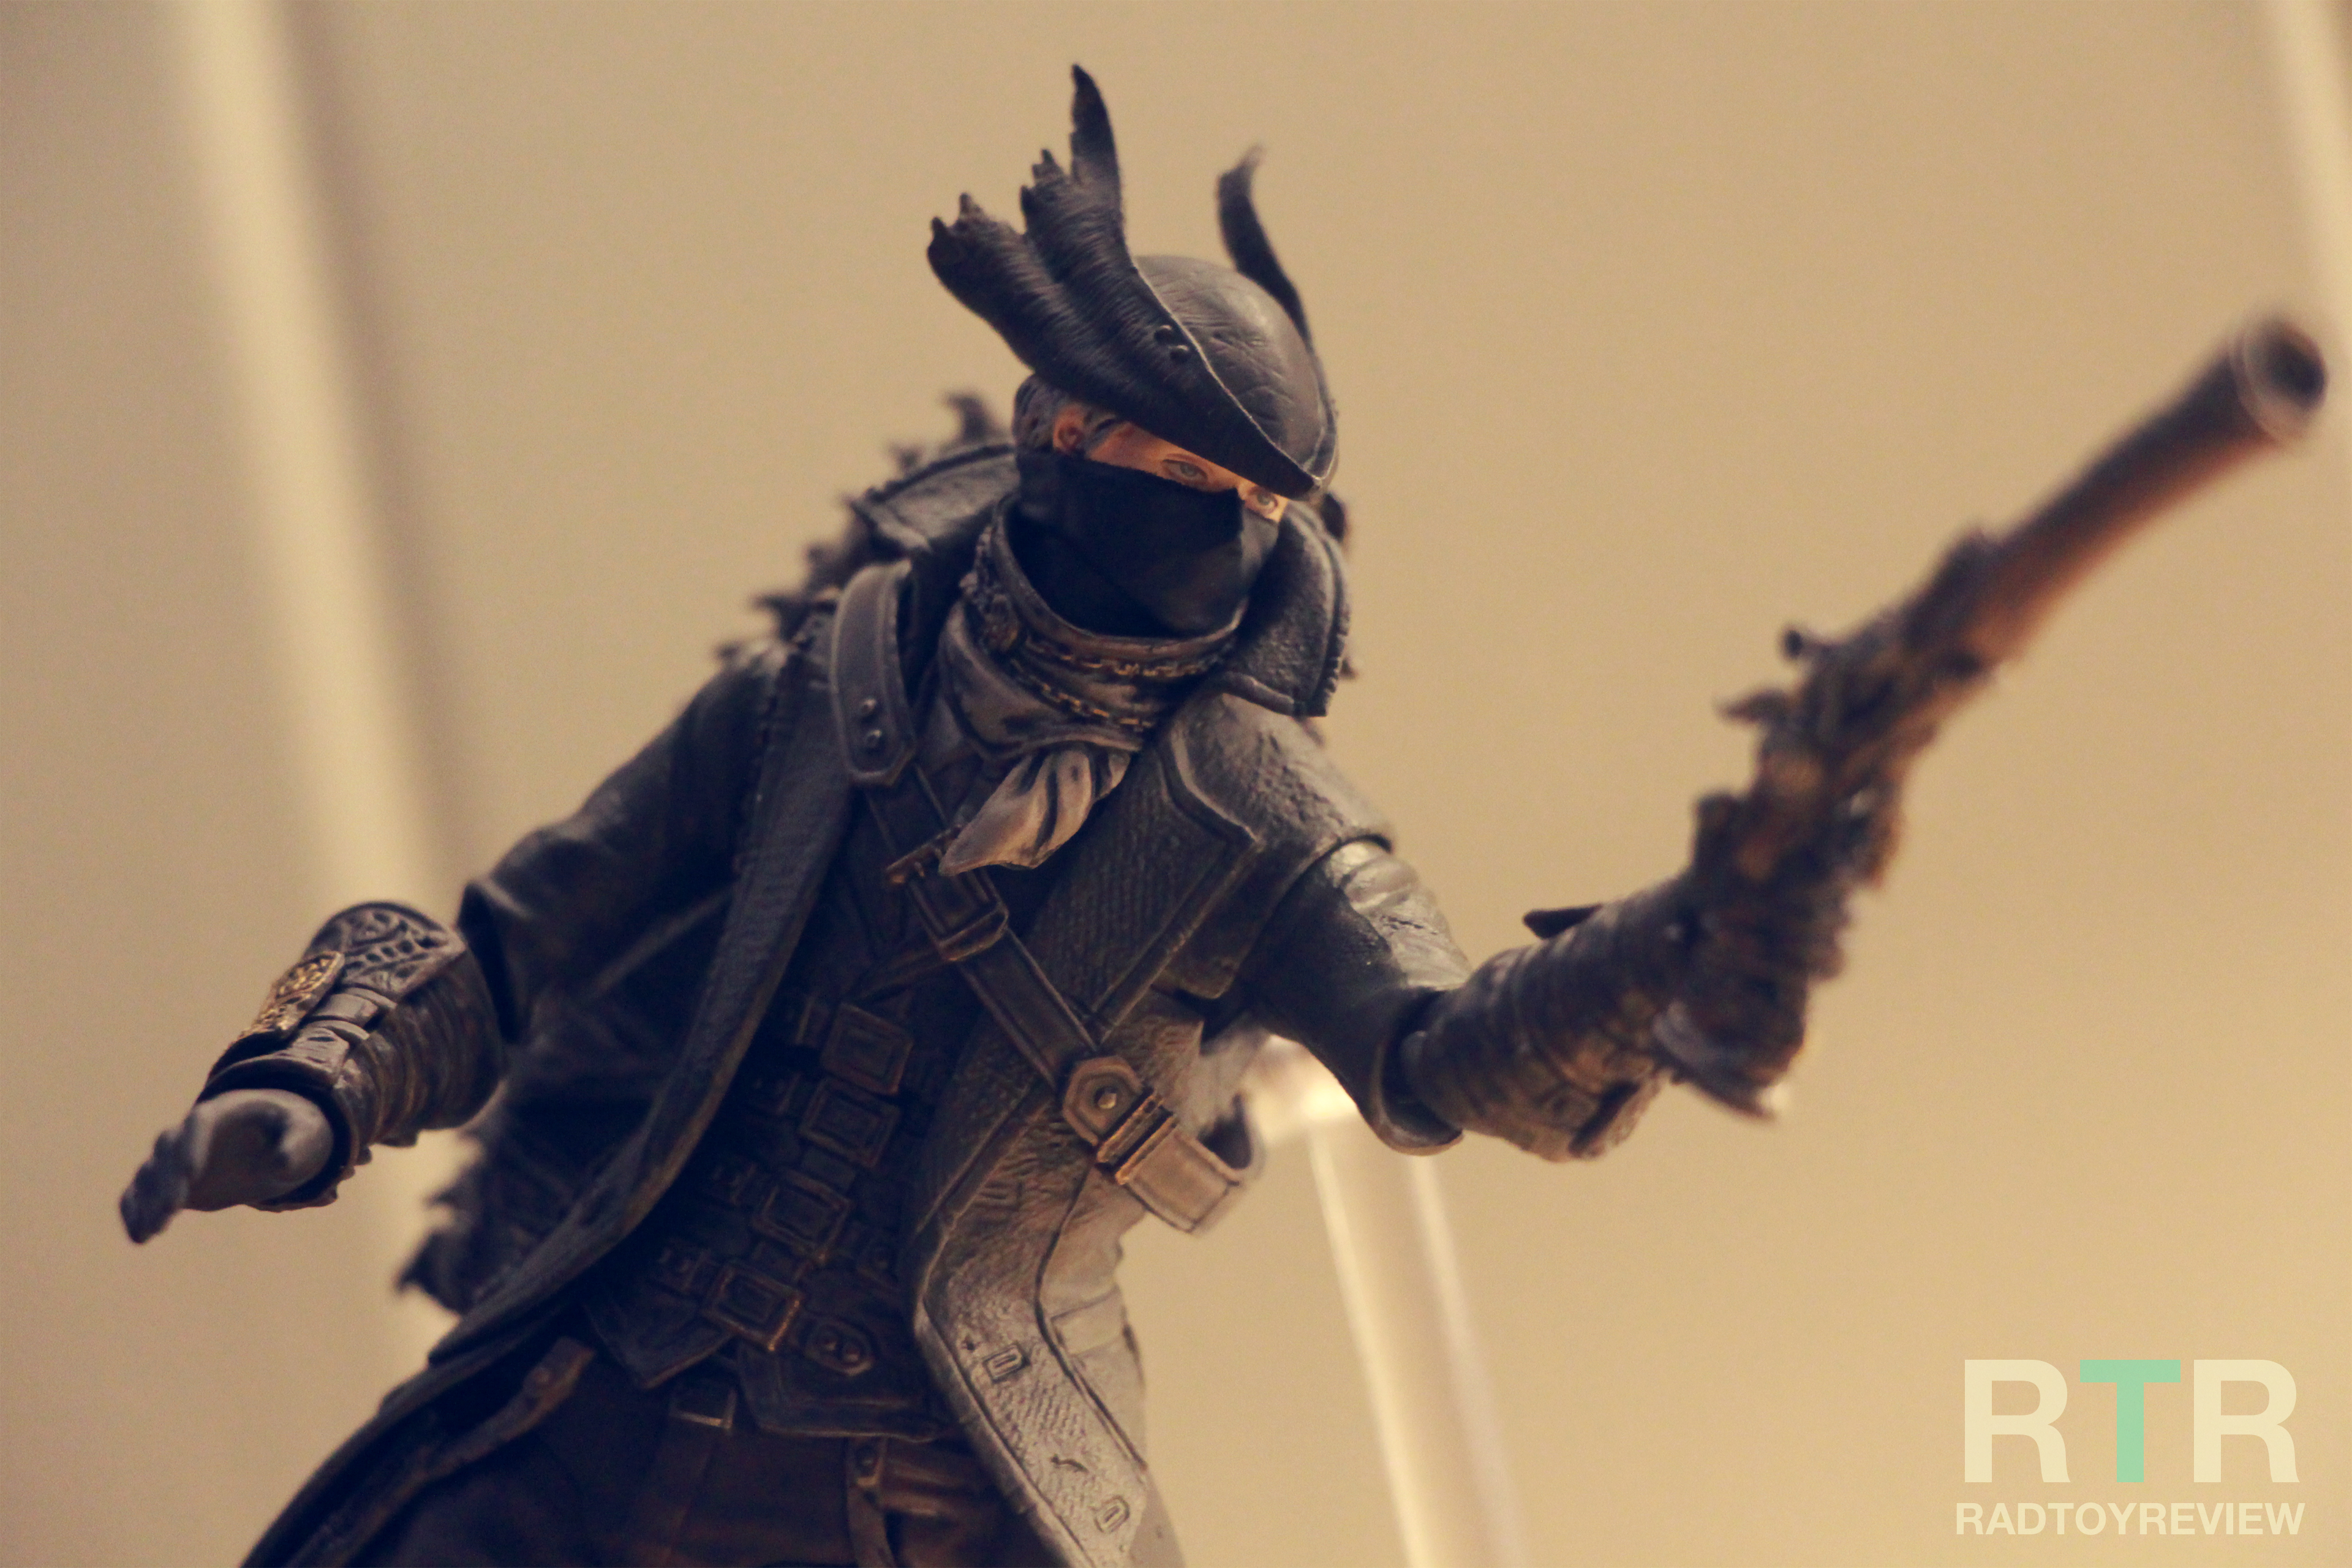 REVIEW* Figma Bloodborne Hunter | Rad Toy Review